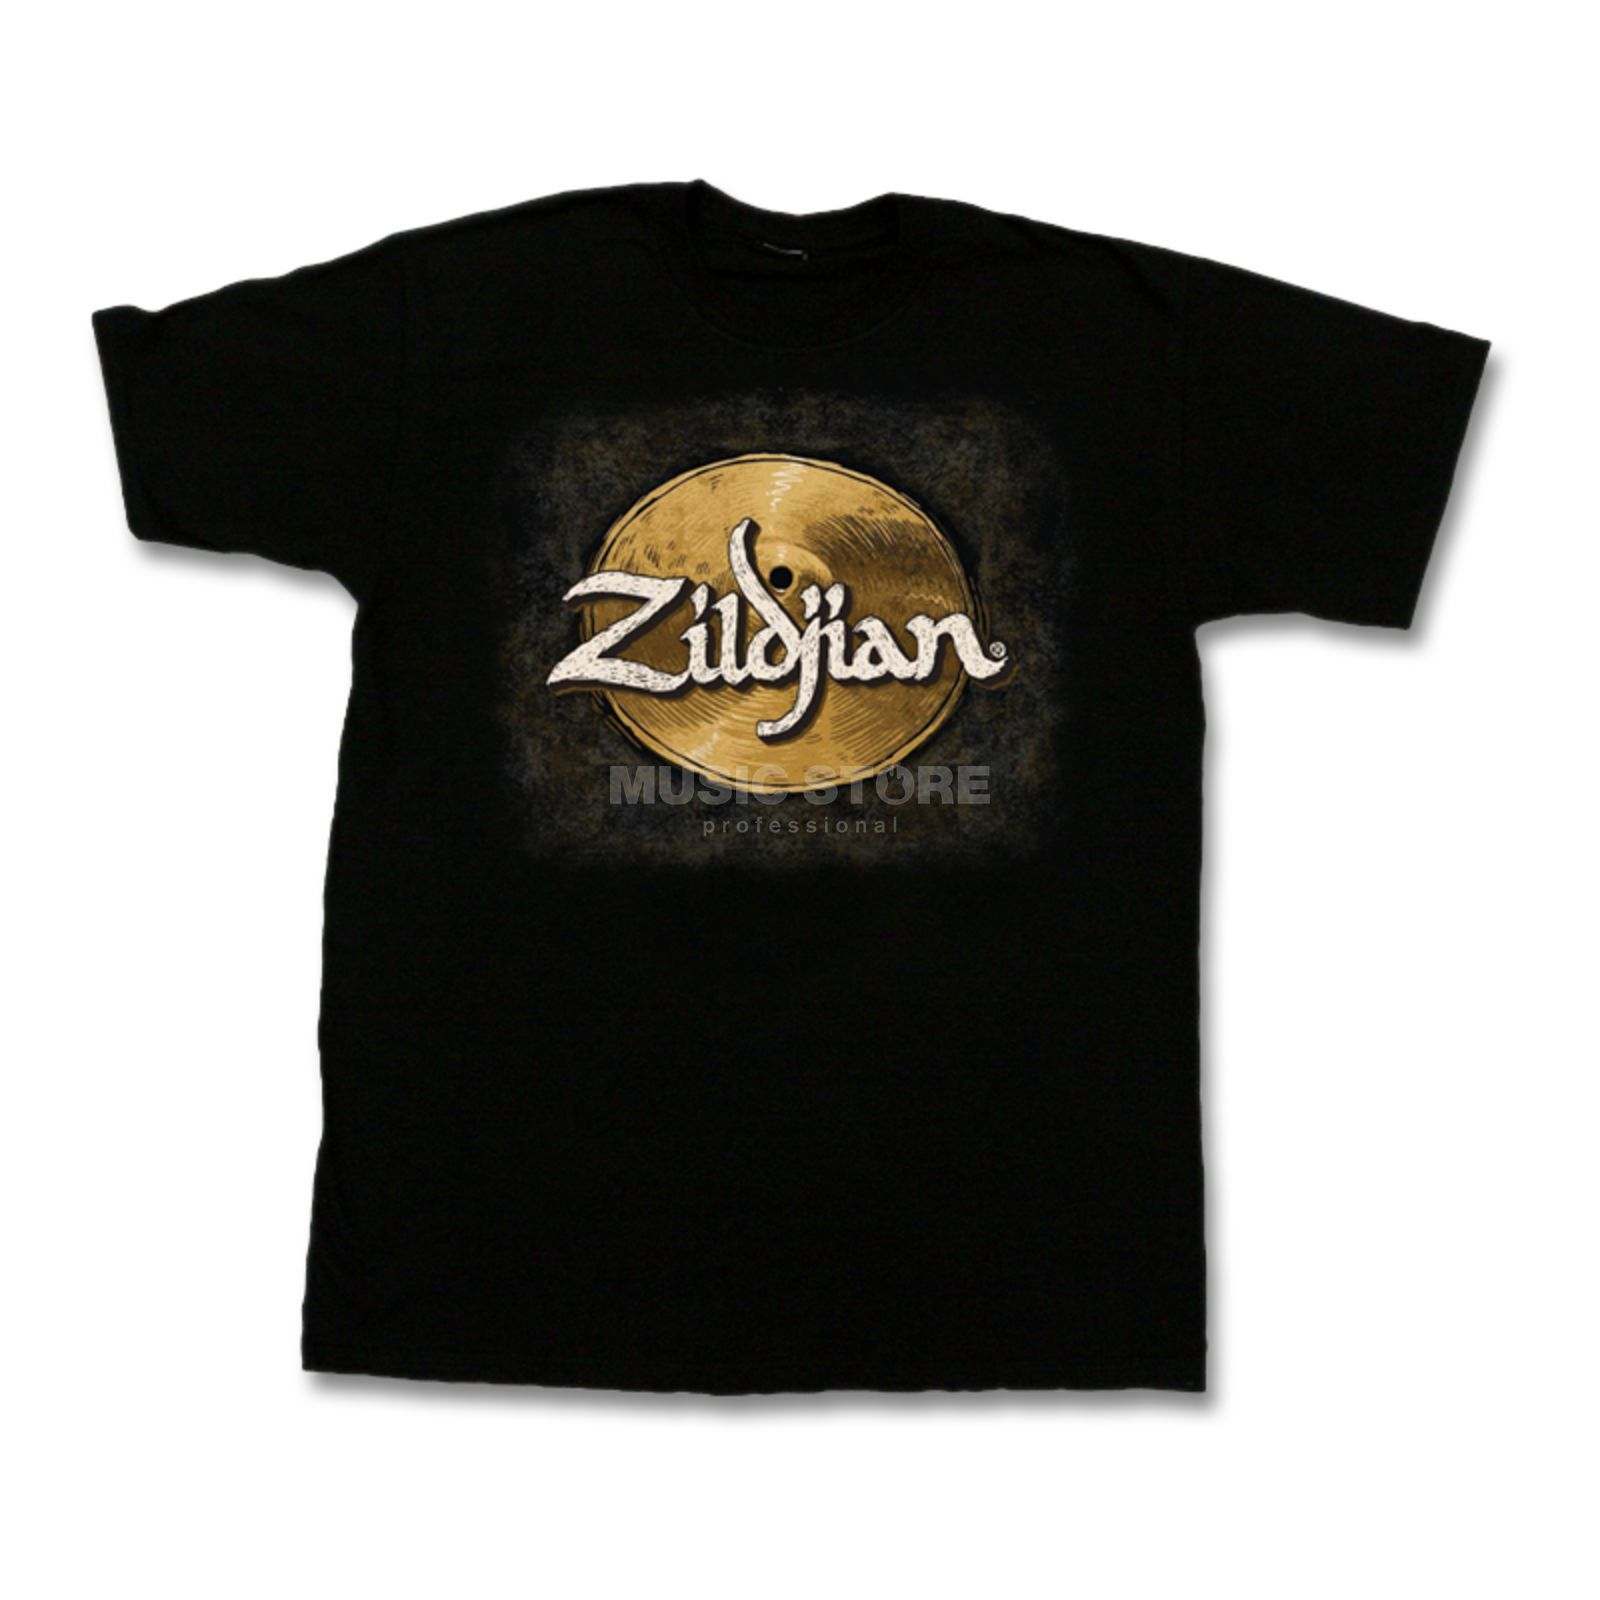 Zildjian T-Shirt Hand-Drawn Black, Medium Product Image